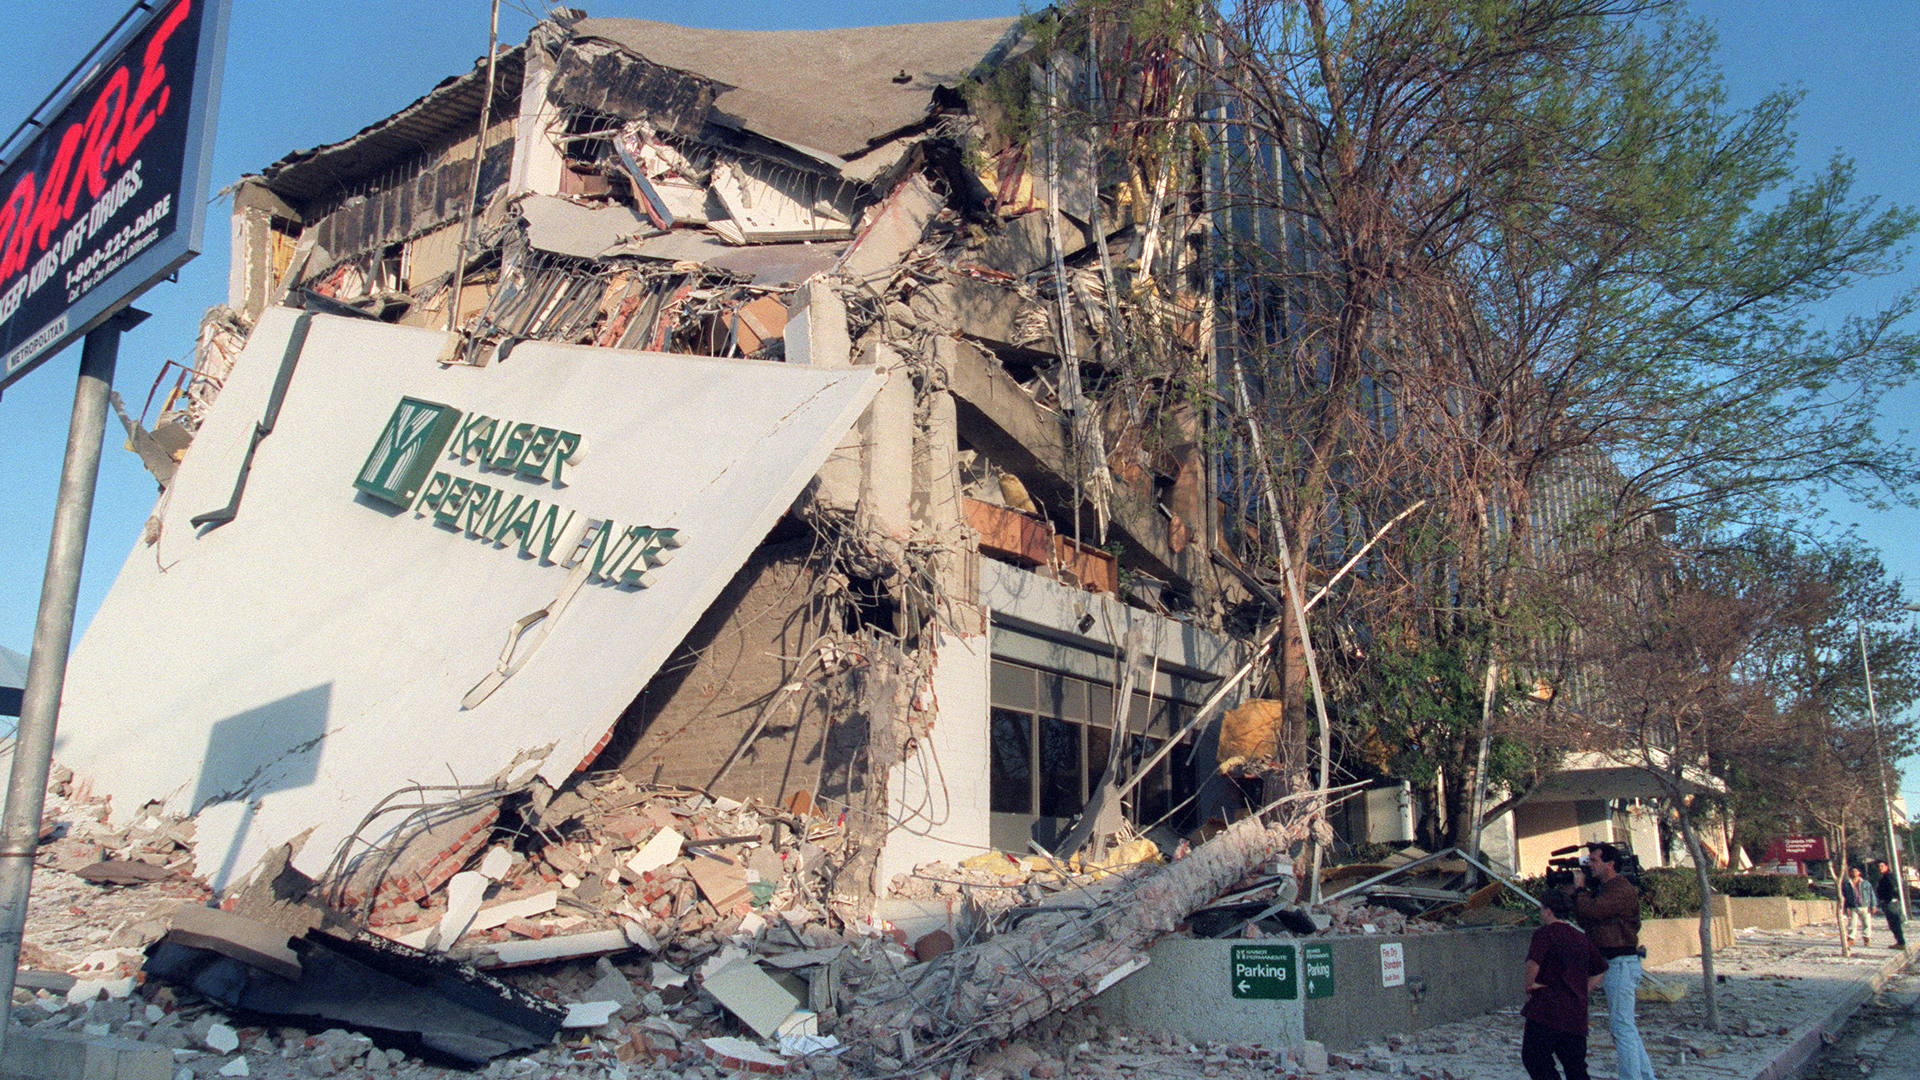 People survey the damage to the Kaiser Permanente Building following the Northridge earthquake on January 17, 1994. (Credit: HAL GARB/AFP/Getty Images)